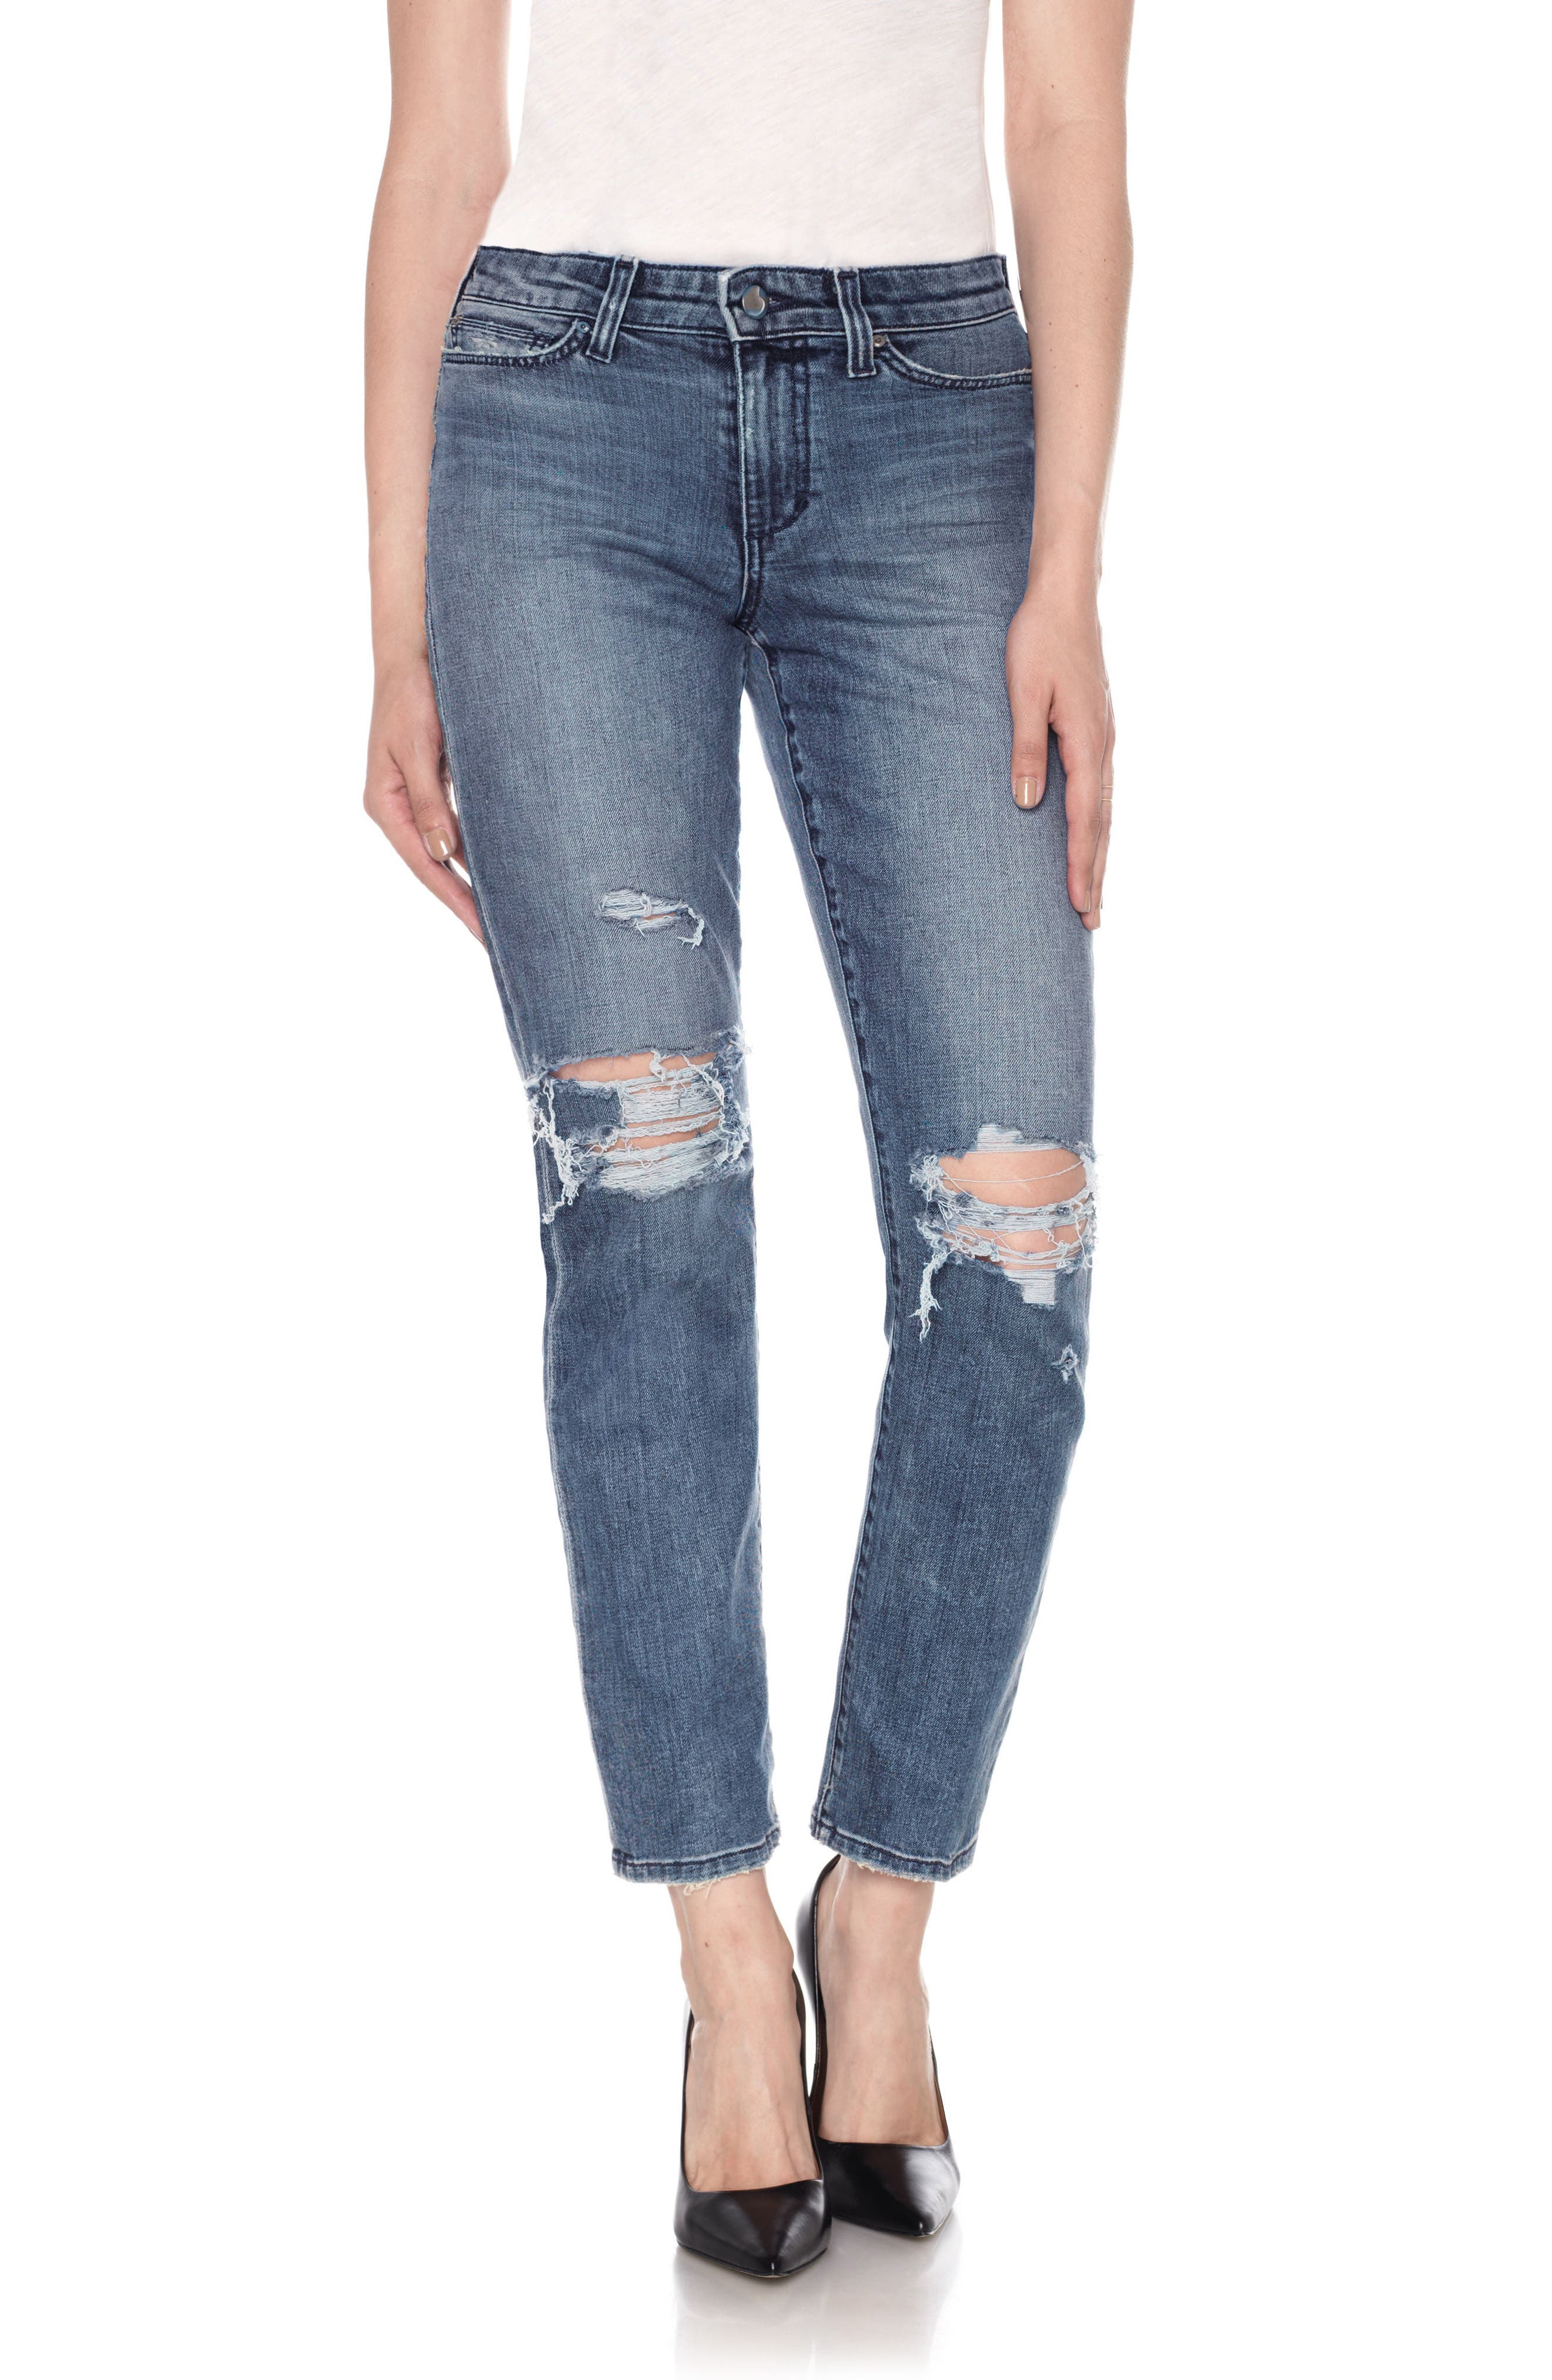 Kass Ankle Skinny Jeans,                             Main thumbnail 1, color,                             Shanti